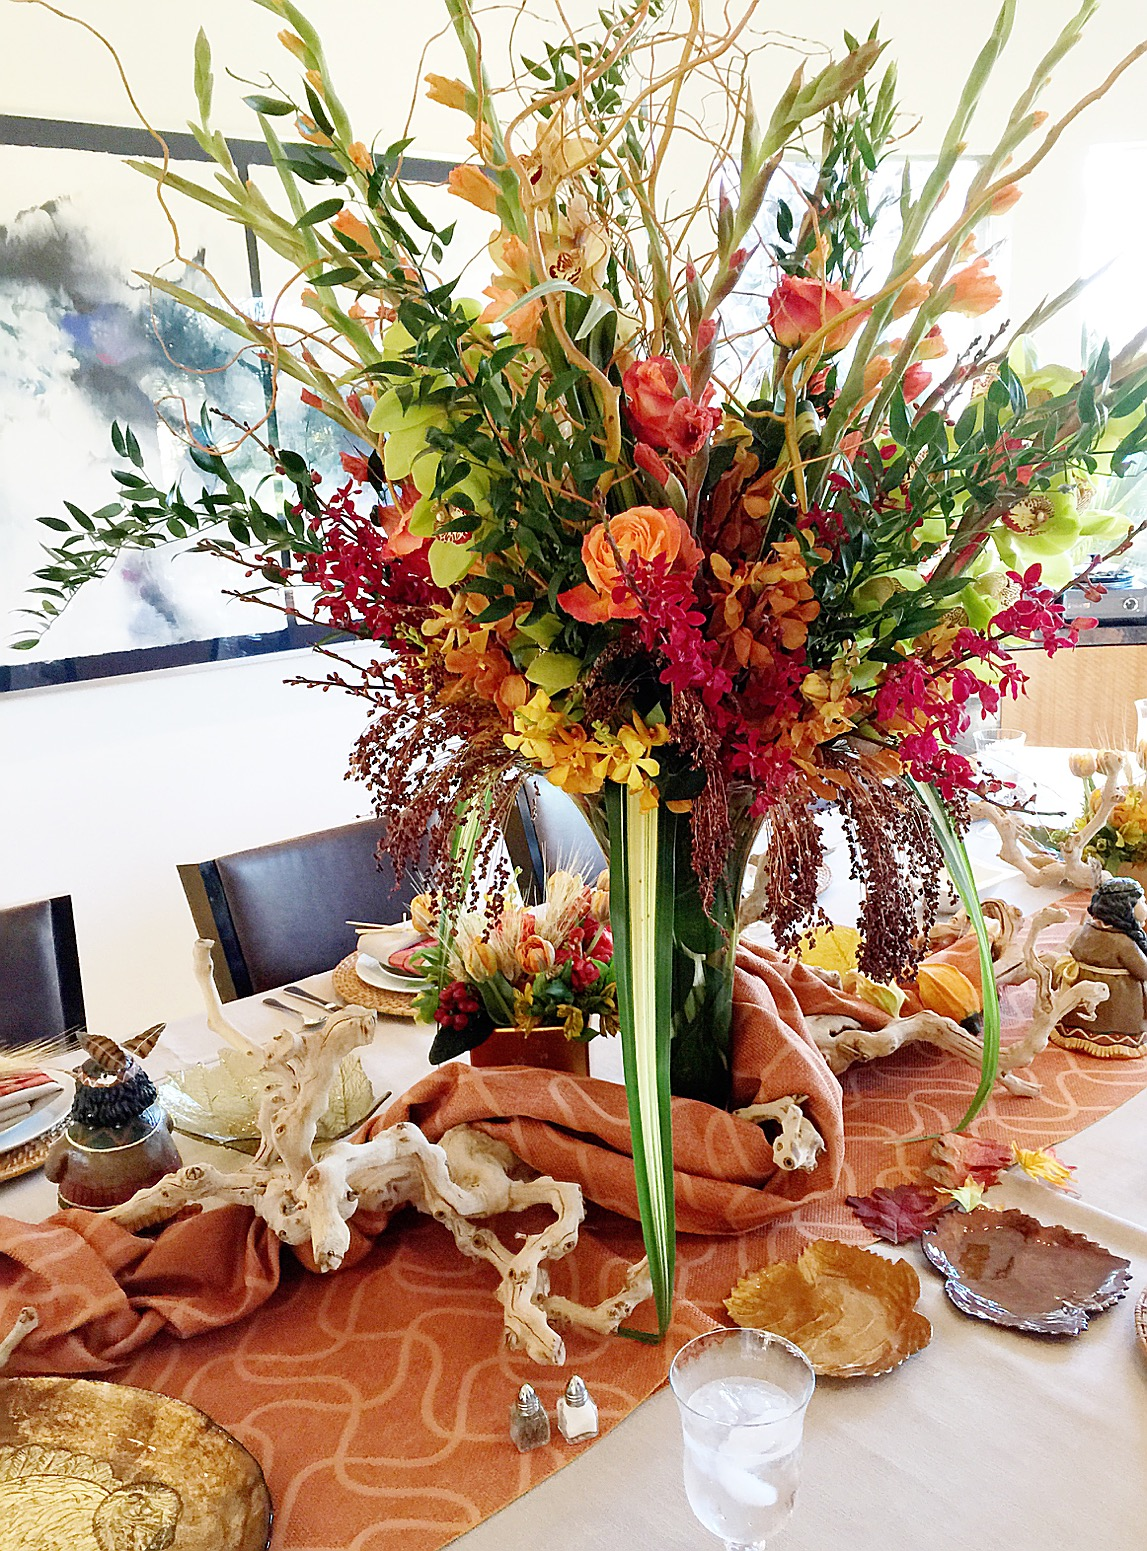 Thanksgiving festivities: Gorgeous floral center piece